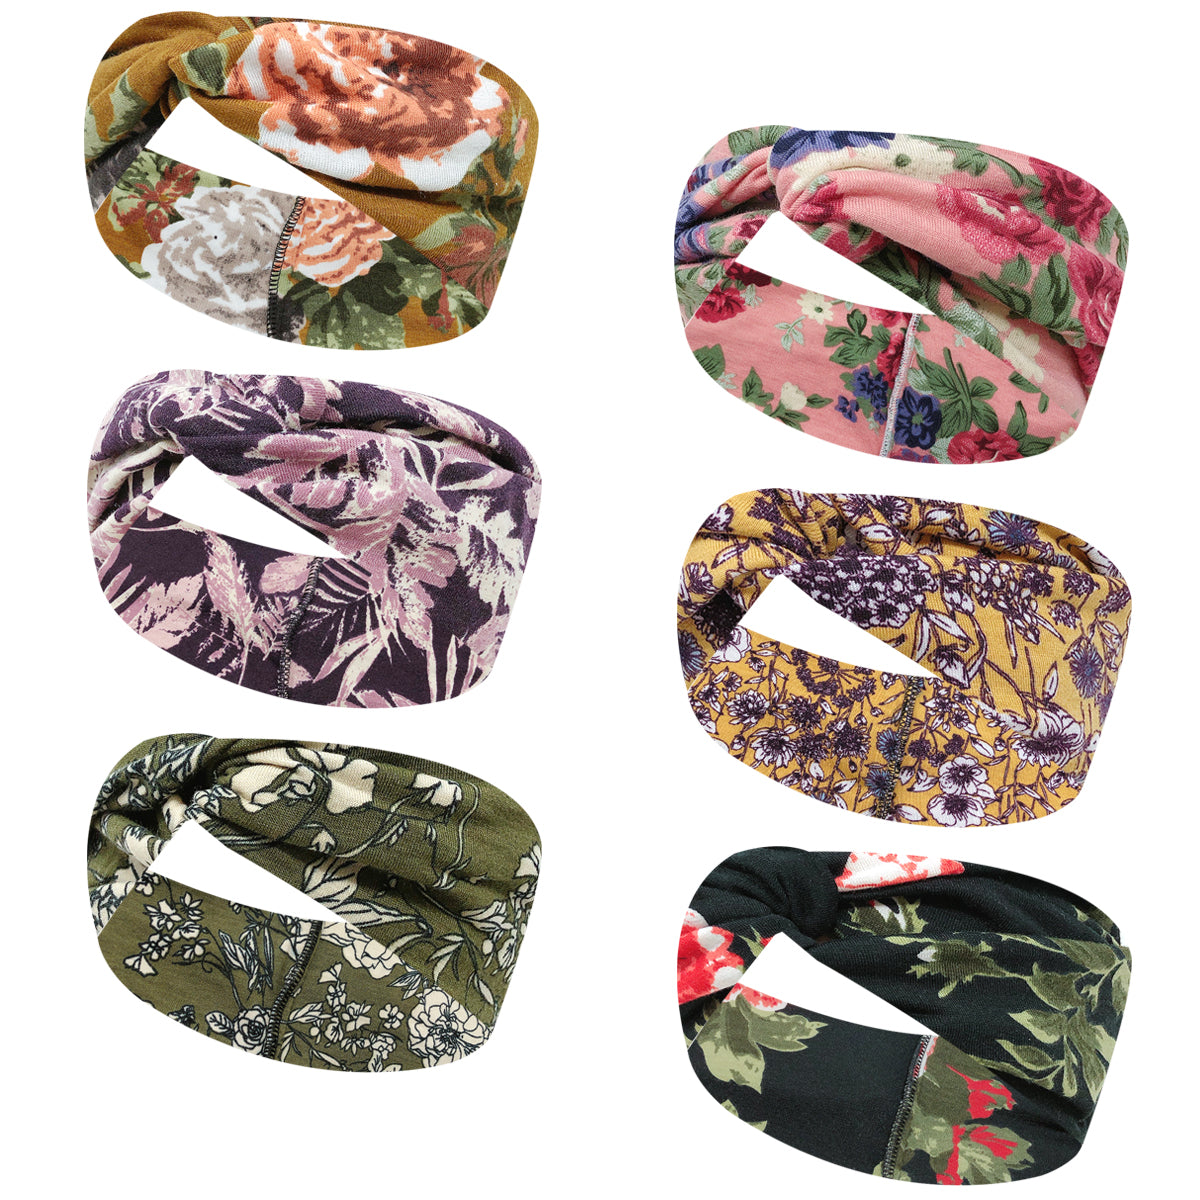 Wrapables Boho Vintage Floral Elastic Headbands for Sports, Yoga, Workouts, Facials (Set of 6)